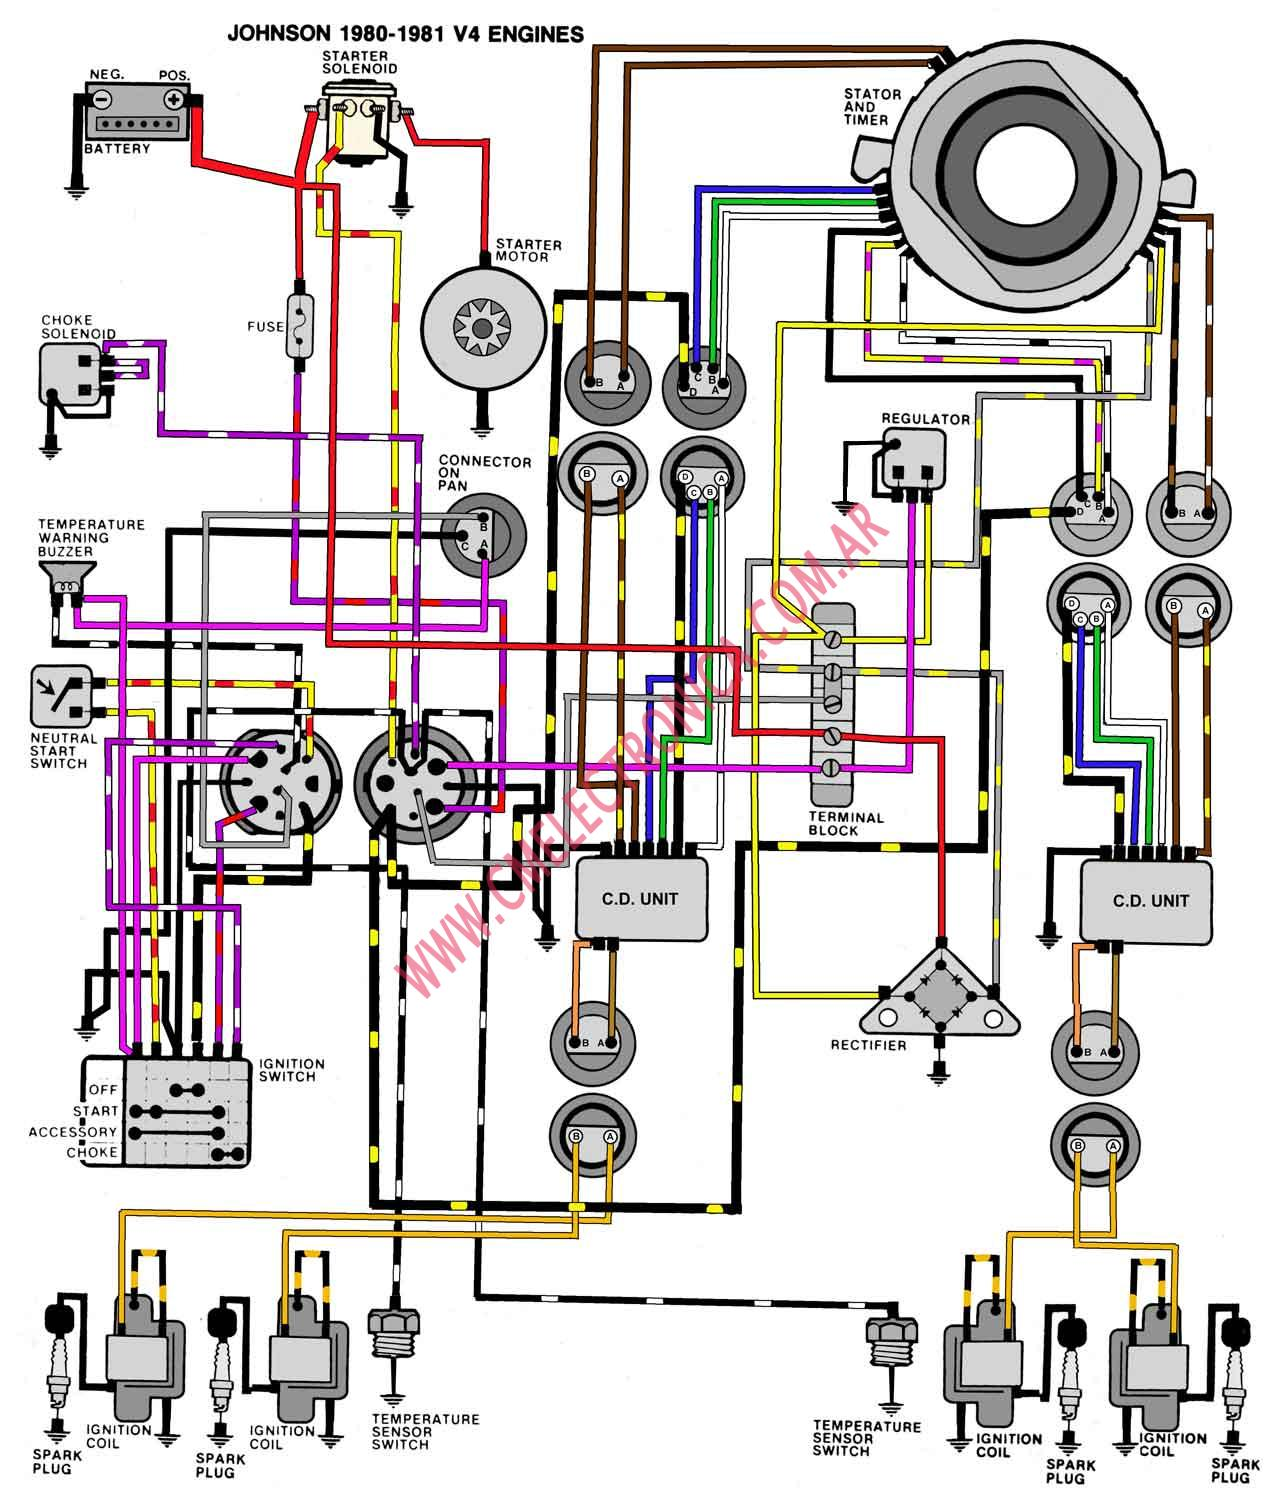 1970 Johnson Outboard Motor Wiring Diagram - 2.xeghaqqt ... on 1970 115 johnson seahorse diagram, 115 hp outboard motor diagram, live well diagram, johnson 115 parts diagram, 115 mercury diagram, johnson motor diagram, johnson ignition wiring diagram, trolling motor diagram,